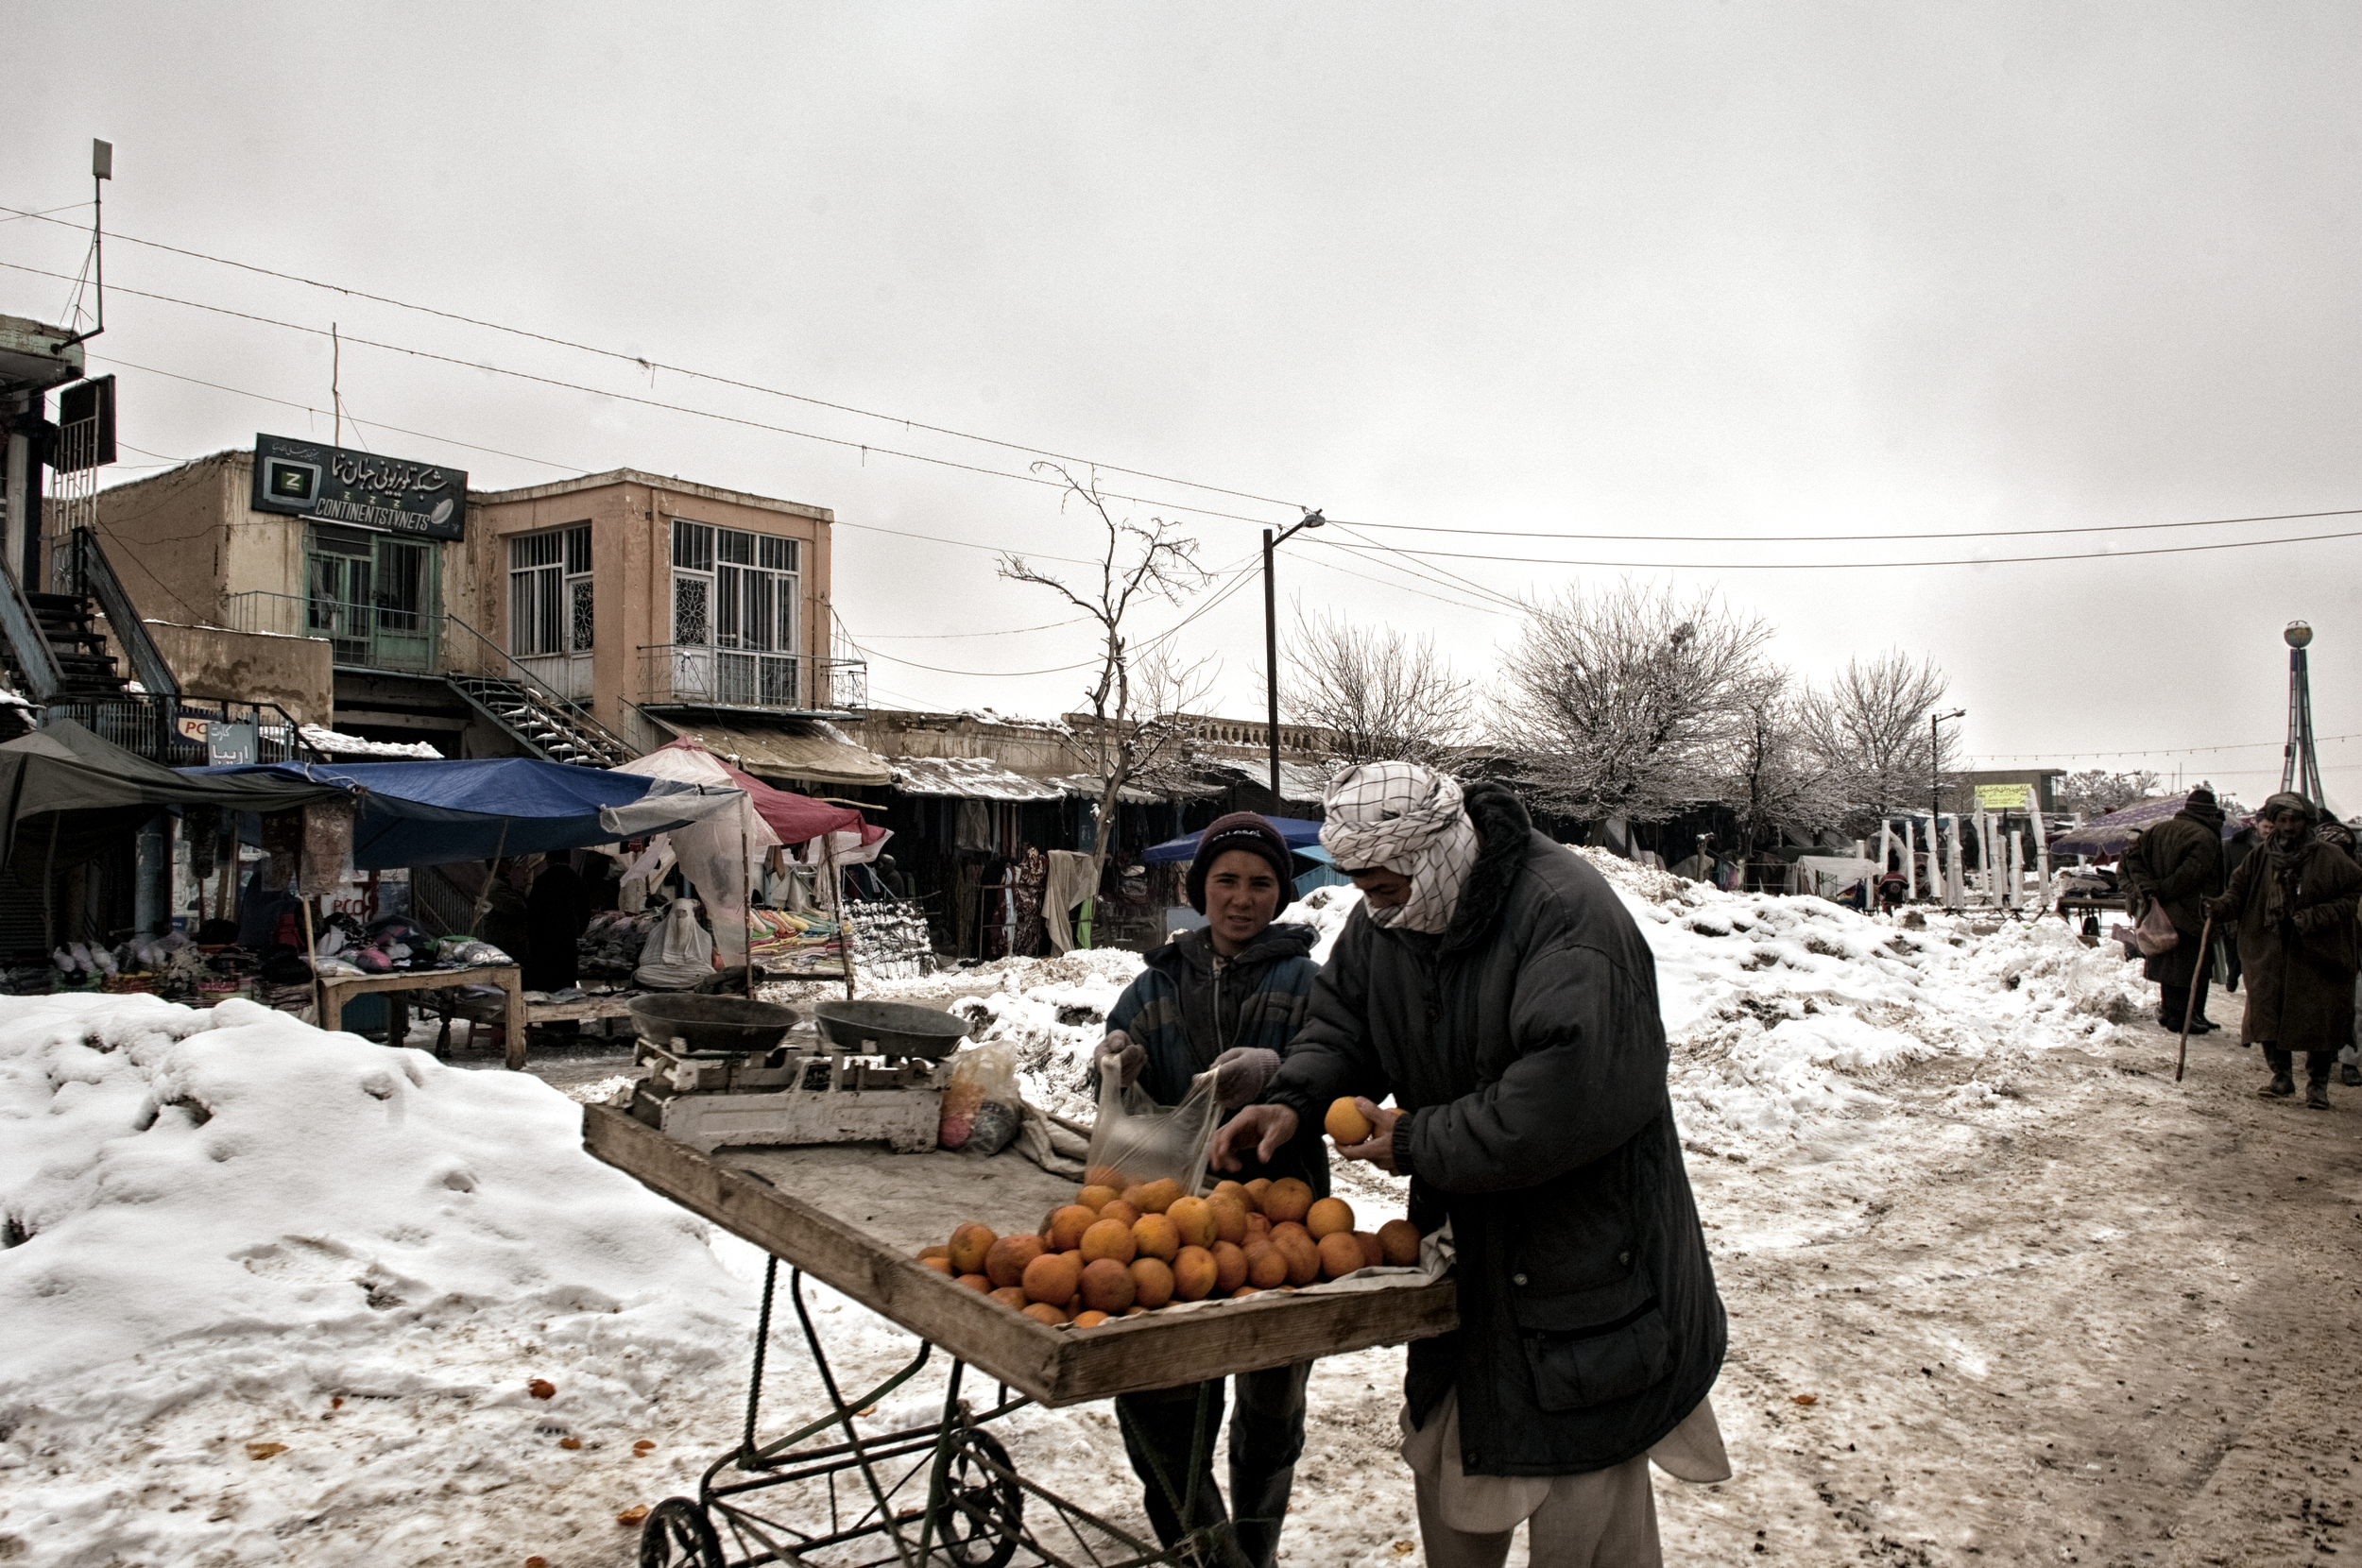 Nearly half the villages in western Afghanistan had been cut off from the major cities due to heavy snowfall, the cold snap affected the delivery of goods Faryab Province, Afghanistan, February 13, 2008. (Photo/Mark Pearson)